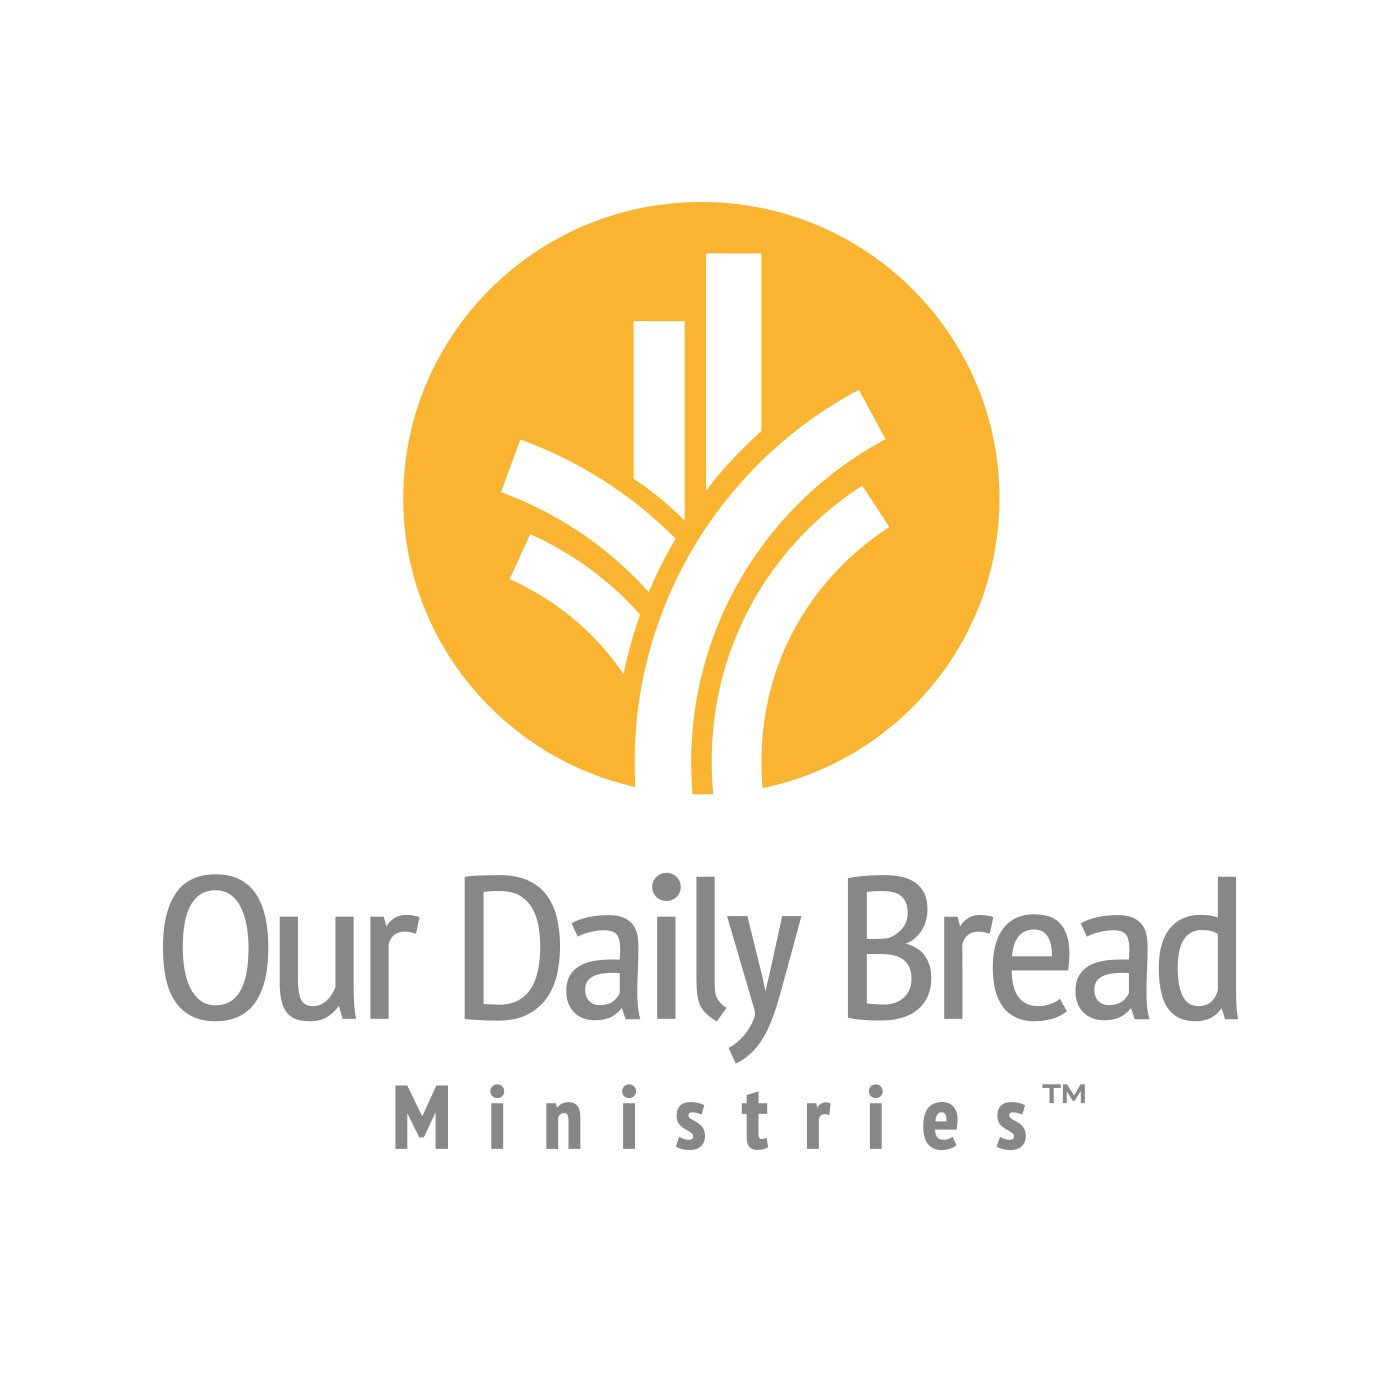 Our Daily Bread 11 September 2019, Our Daily Bread 11 September 2019 Devotional – Better Than Ever